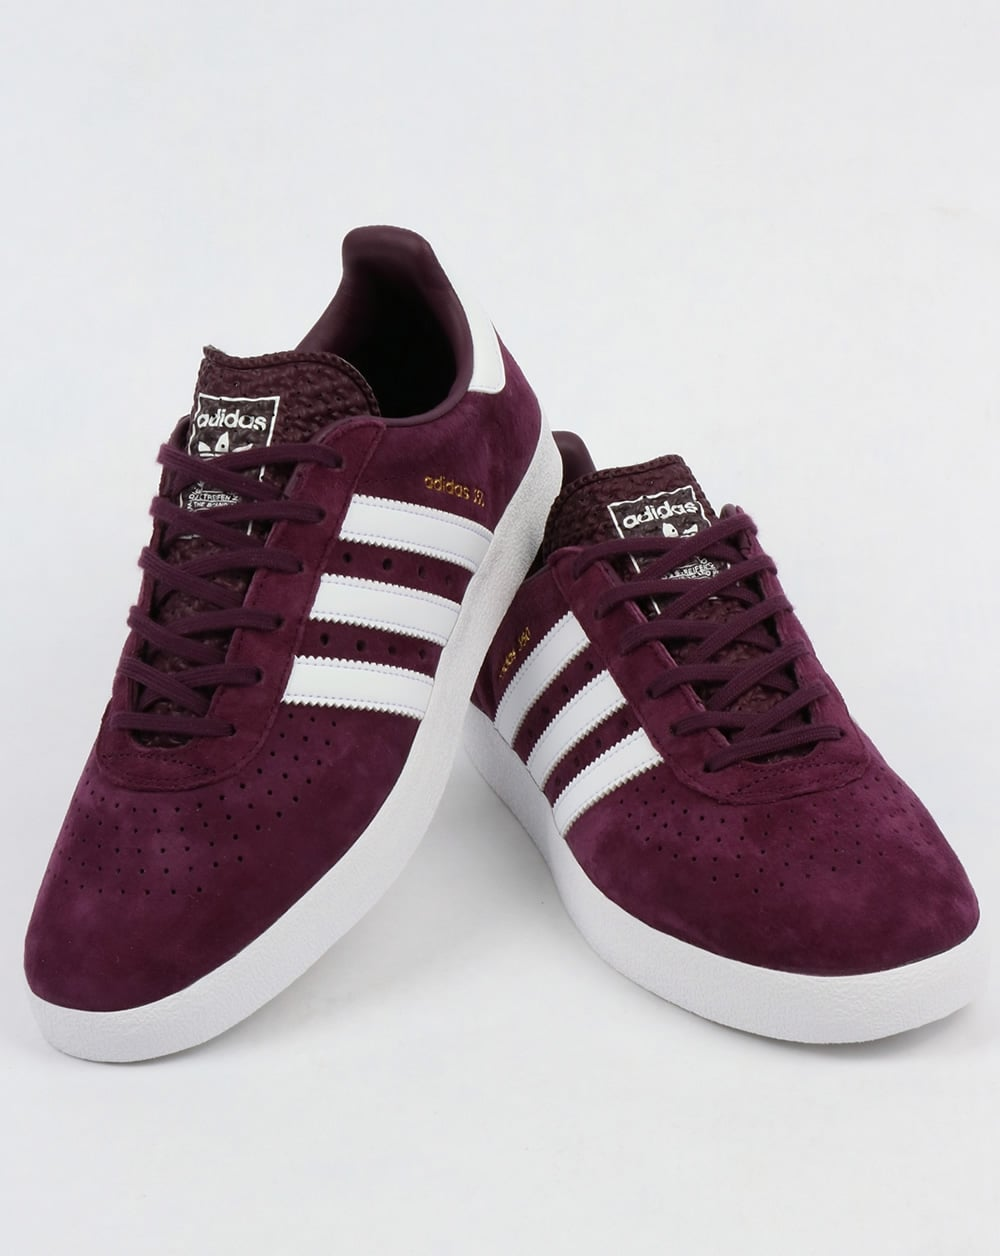 Image Result For Best Casual Shoes For